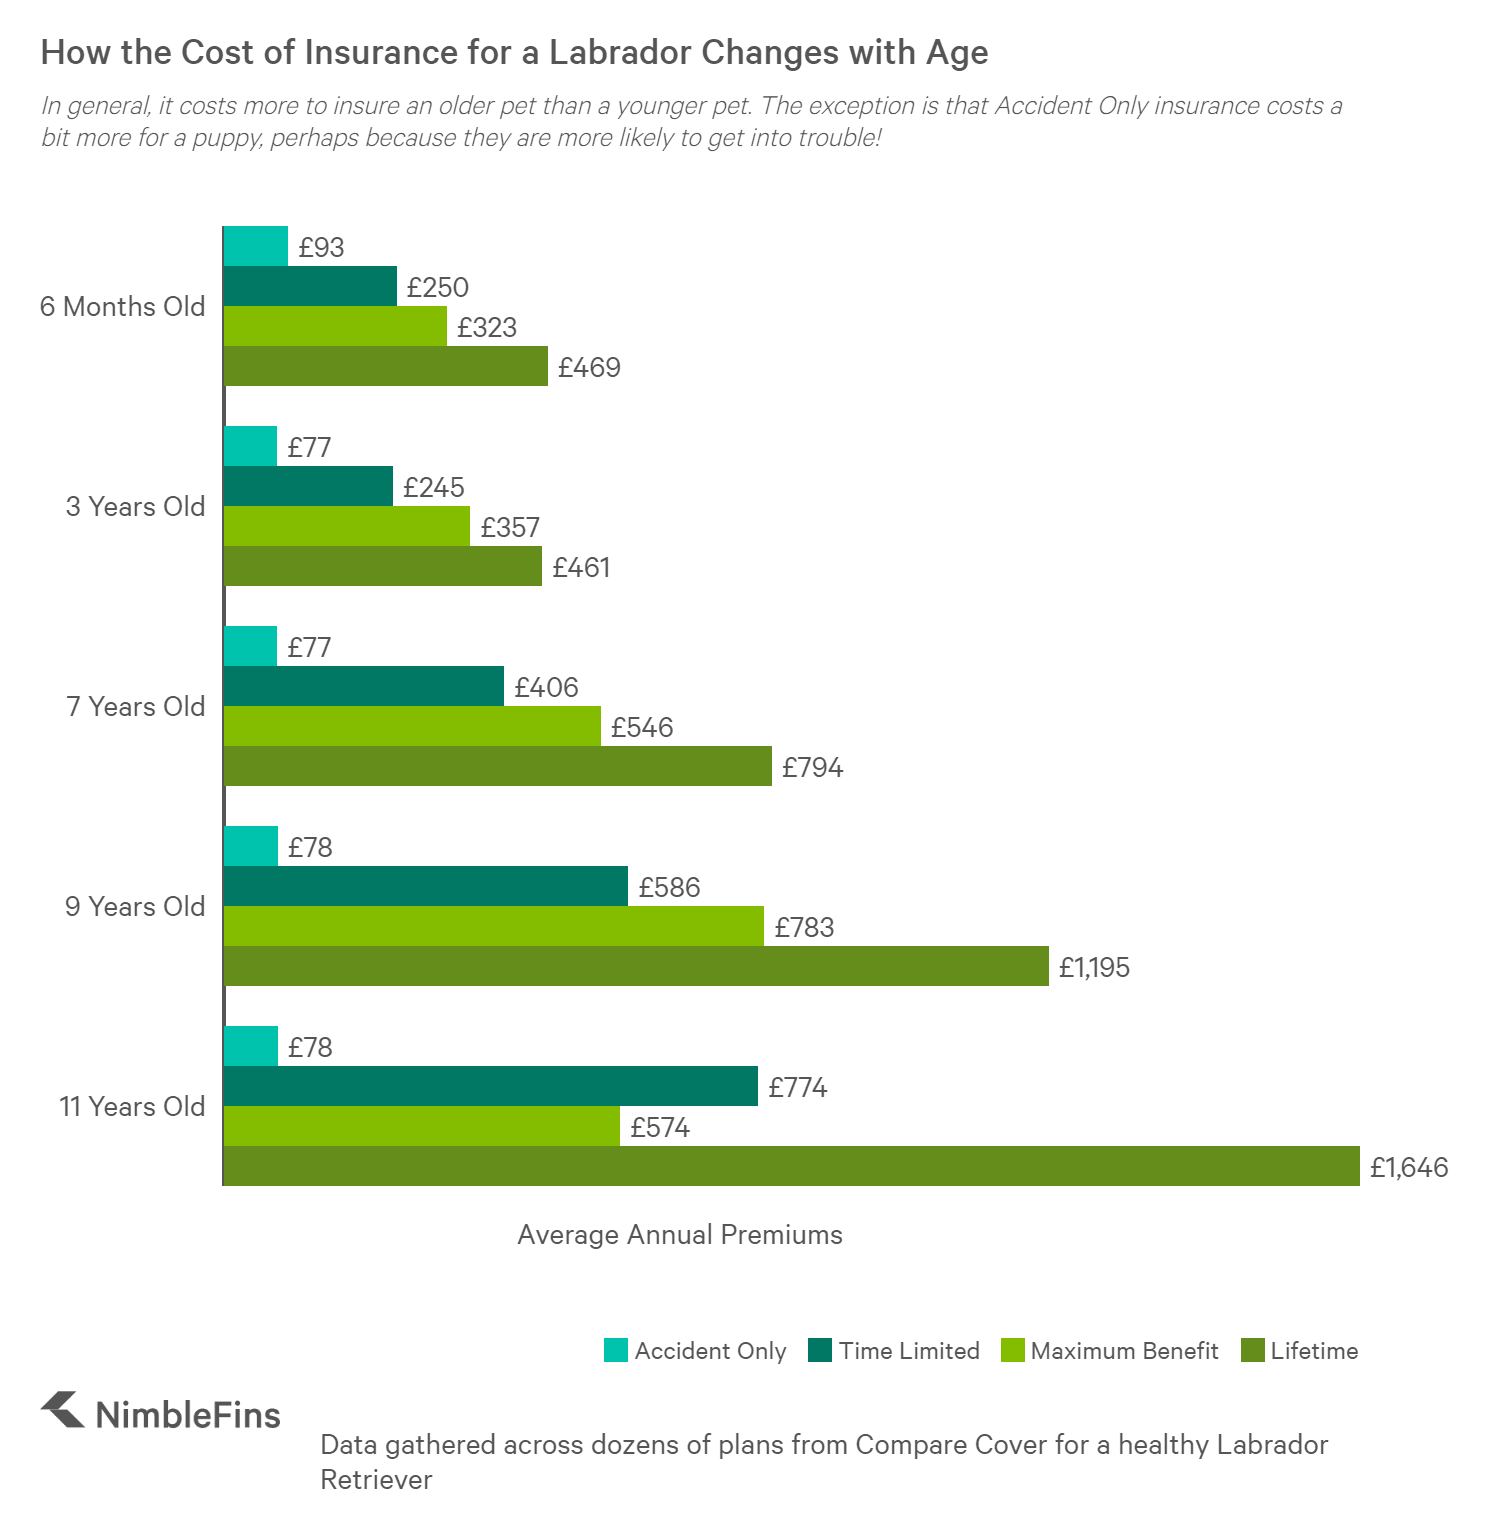 Cost of Labrador pet insurance by age of dog